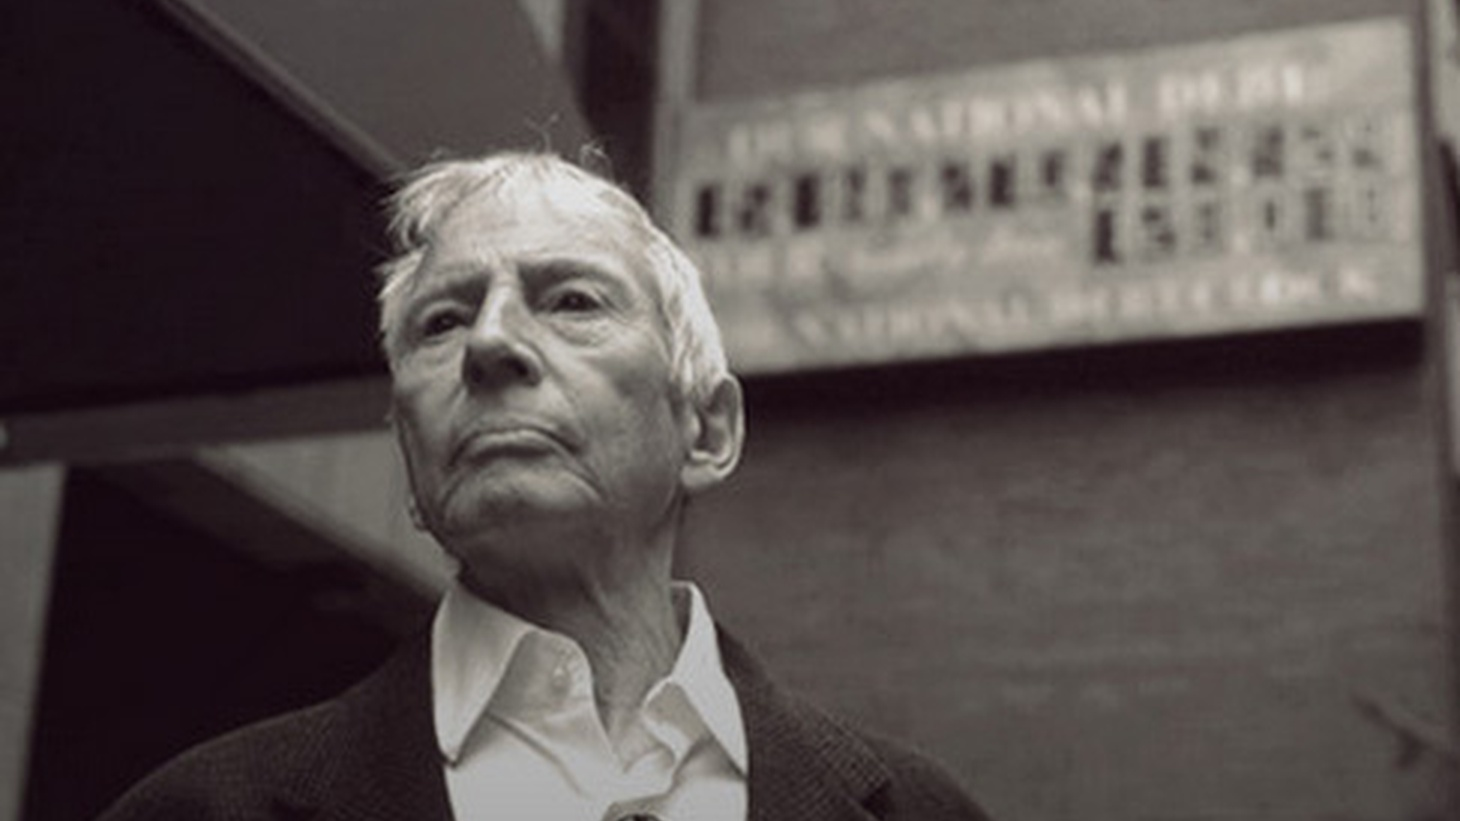 Five years ago, director Andrew Jarecki and producer Marc Smerling came out with a movie based on the life of billionaire New York real estate heir Robert Durst, who's been suspected but never convicted of three murders.